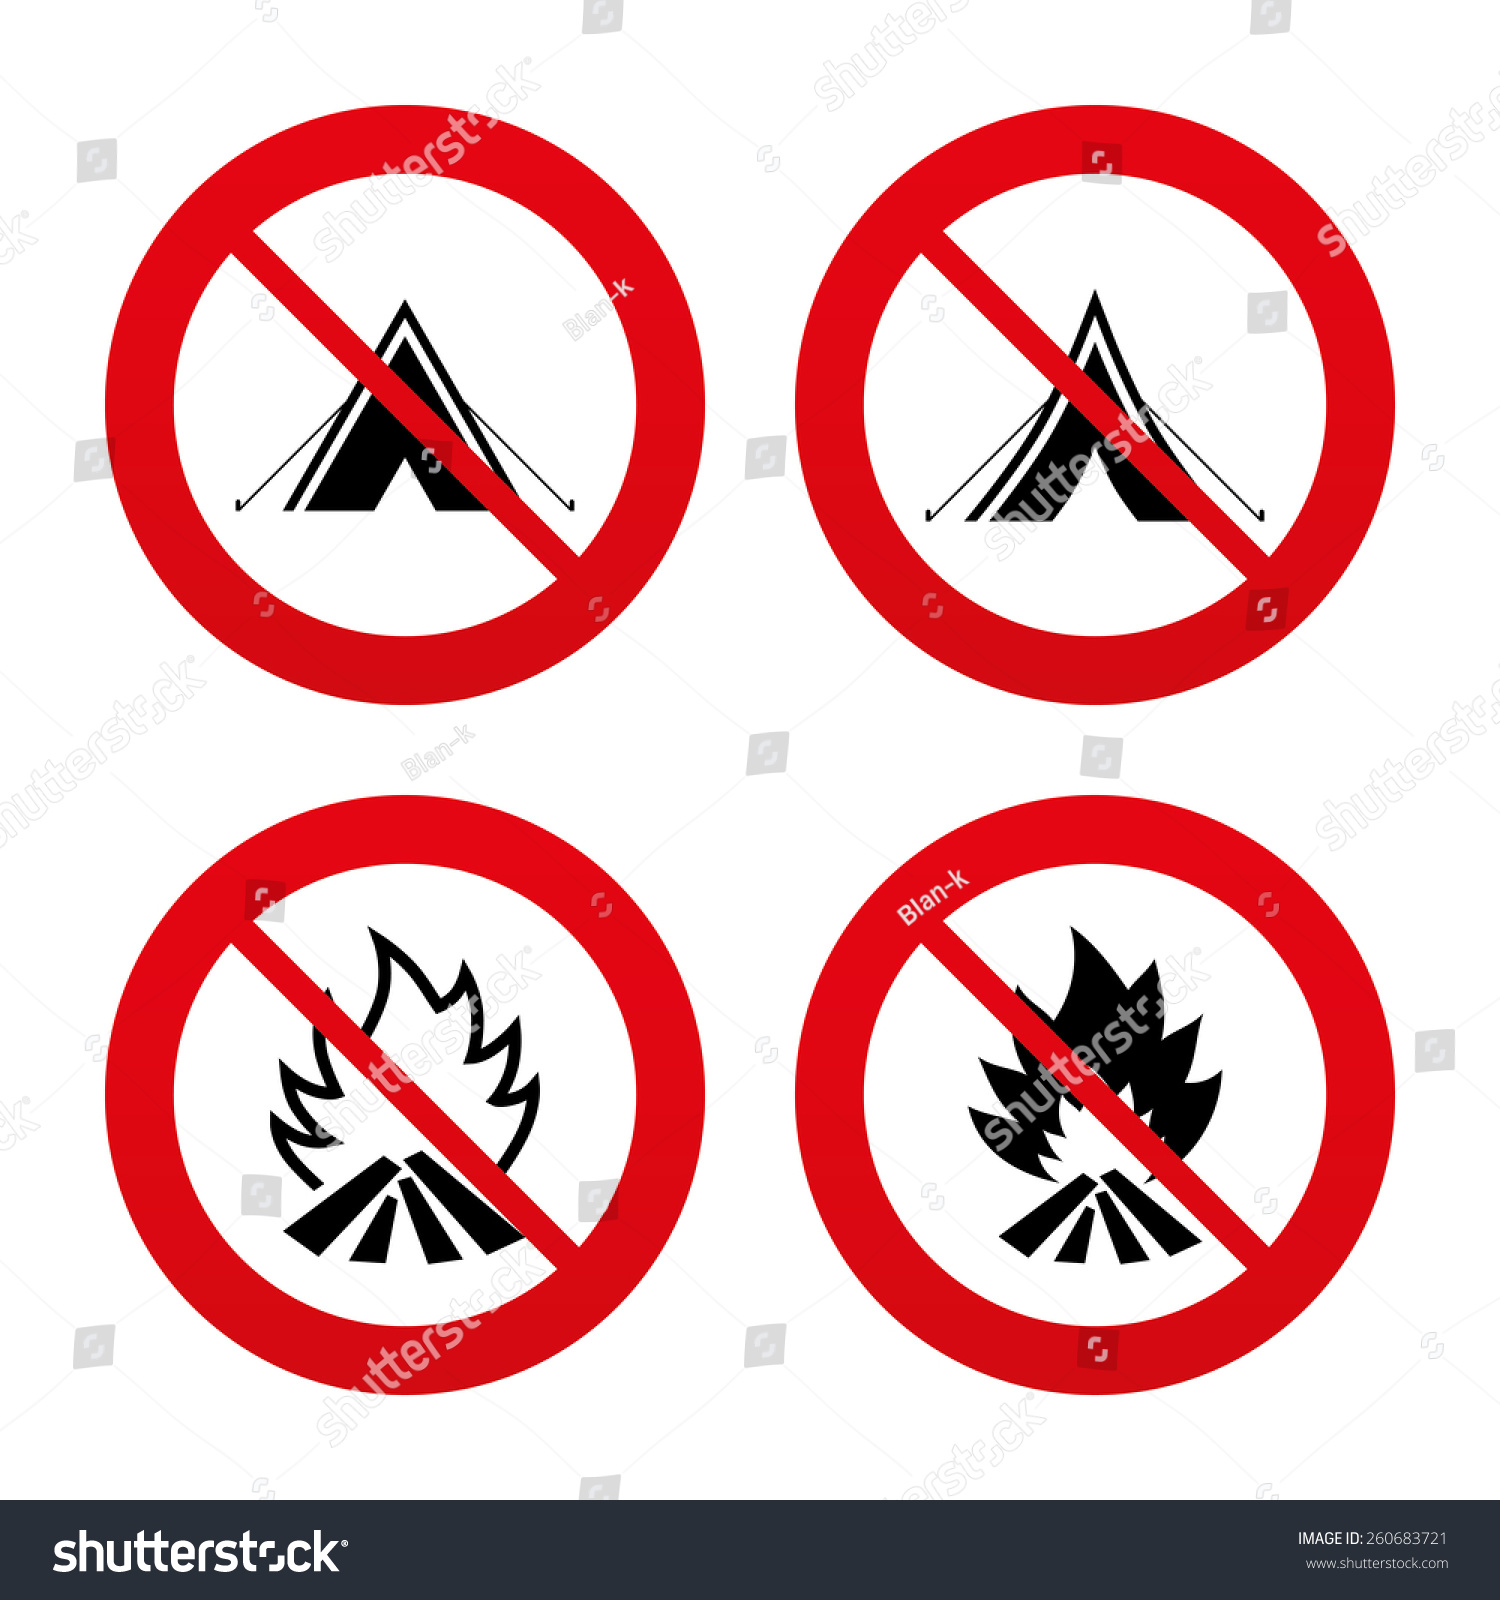 No Ban Stop Signs Tourist Camping Stock Vector Royalty Free